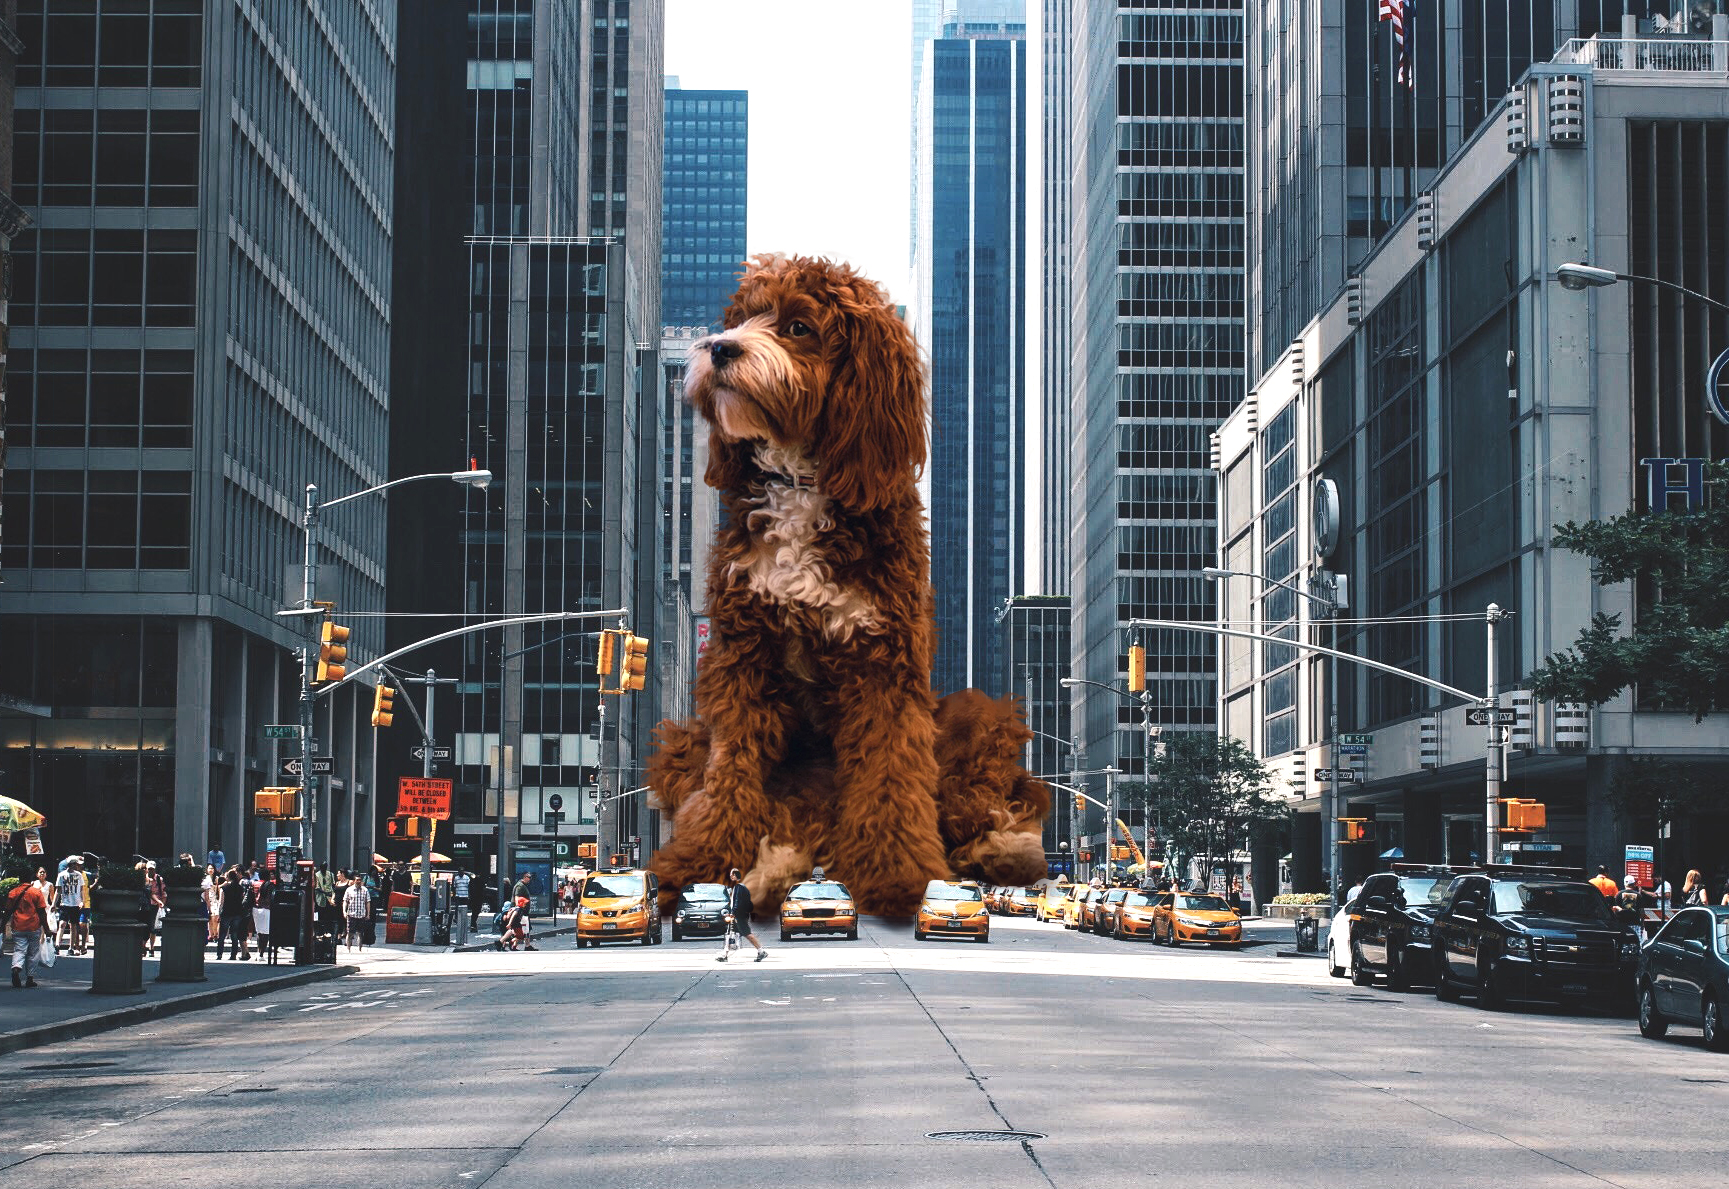 Giant dog in the middle of the street edited with PicsArt stickers